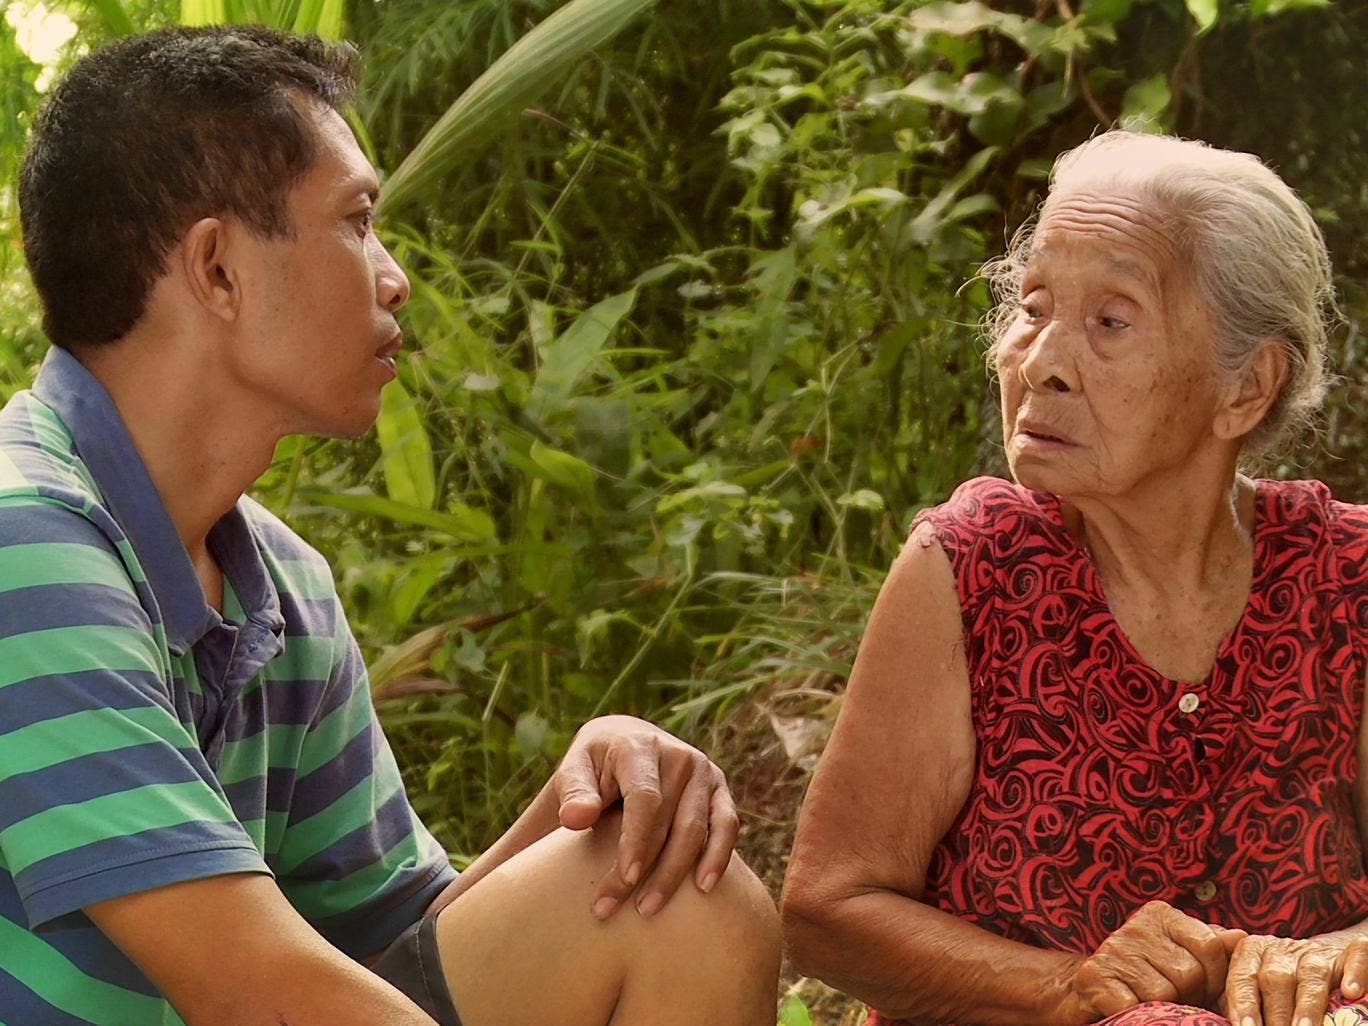 Adi Rukun and his mother, Rohani, in 'The Look of Silence'